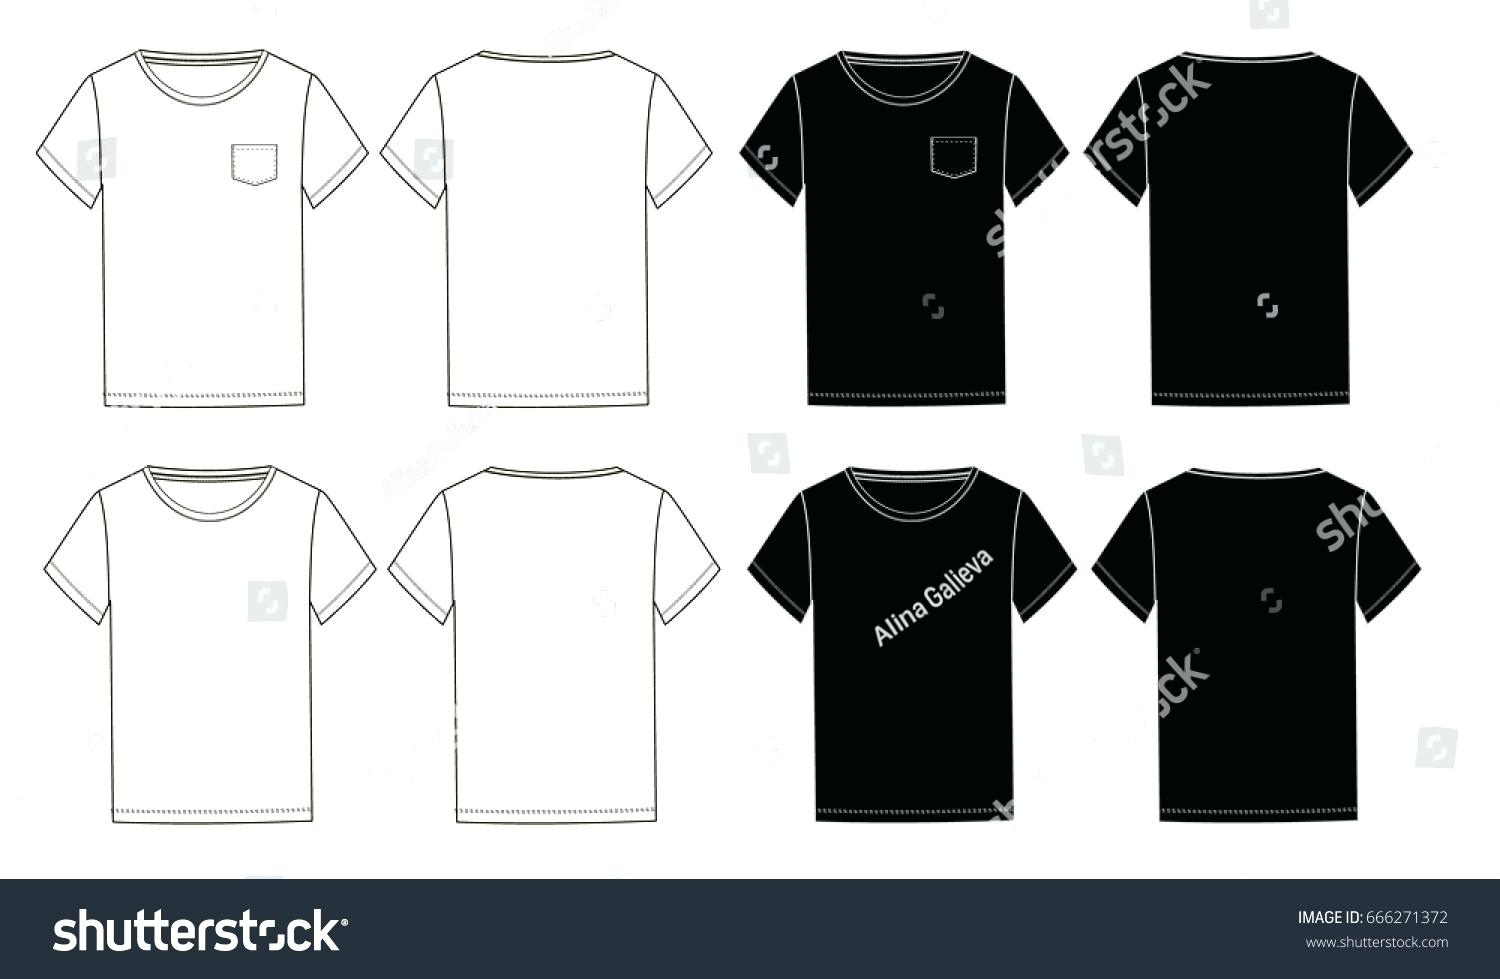 1500x979 Template T Shirt Drawing Template Image Polo Corel Draw. T Shirt